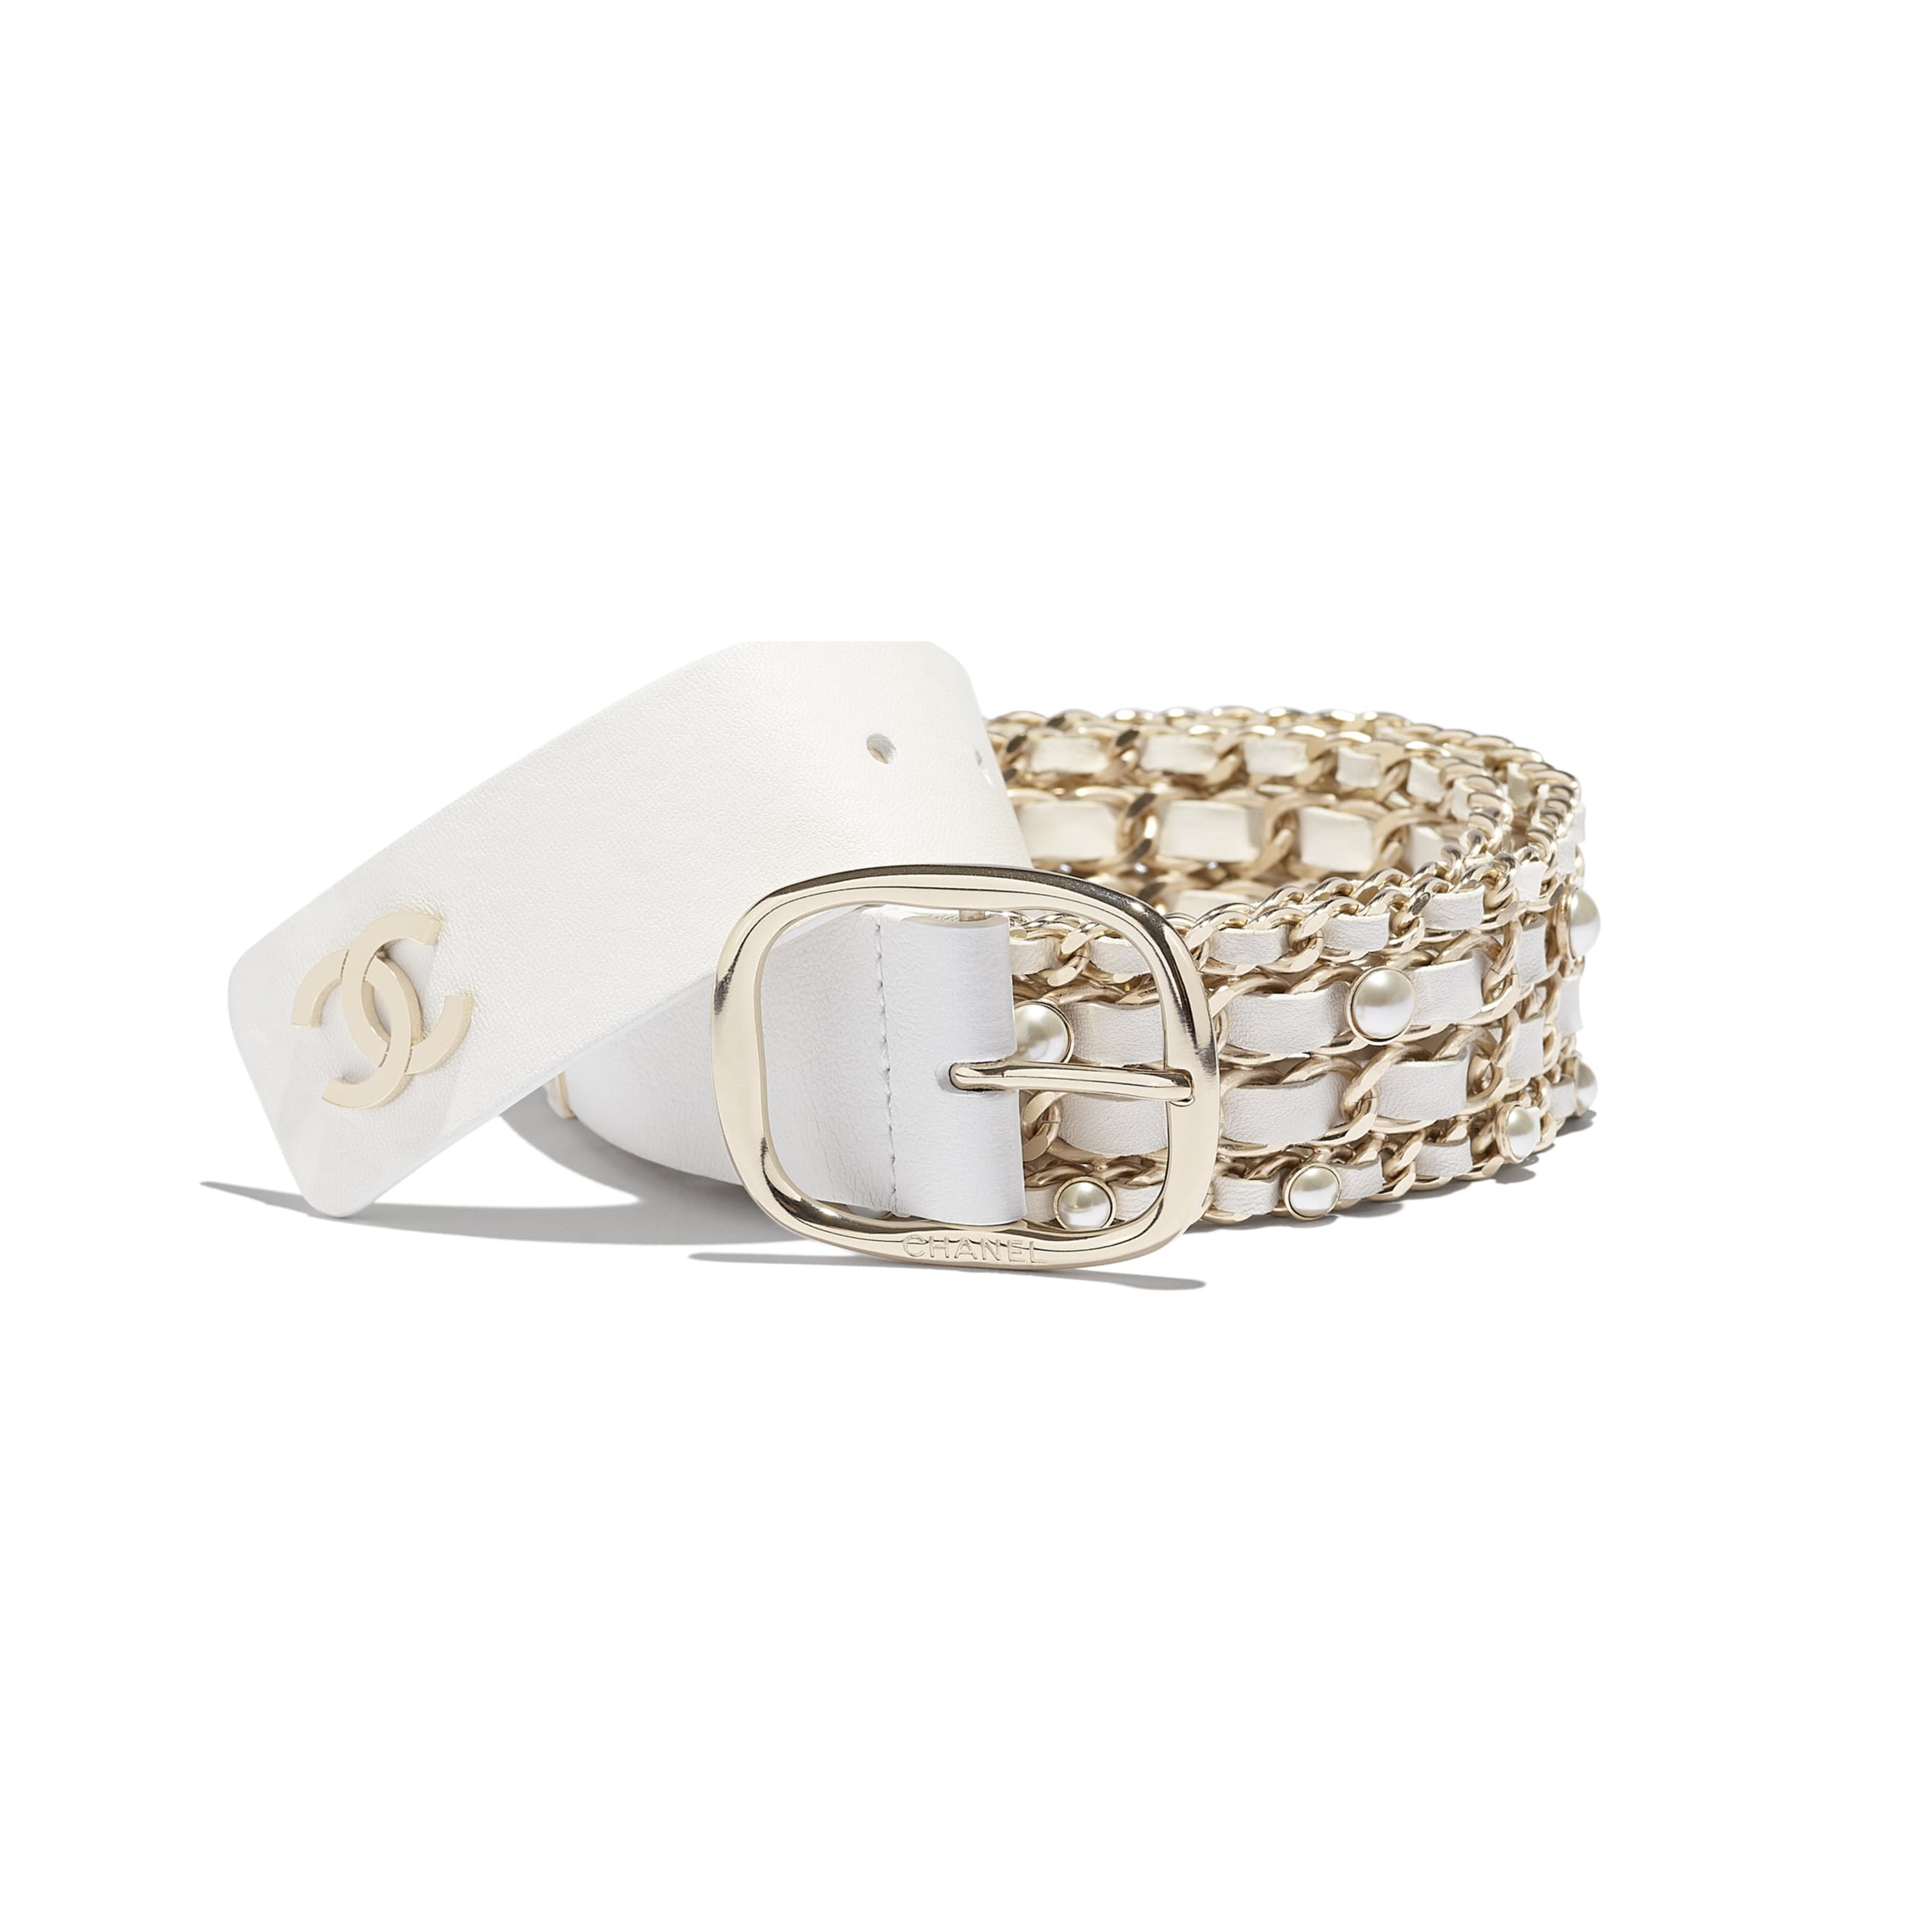 Belt - White - Lambskin, Gold-Tone Metal & Glass Pearls - Alternative view - see standard sized version